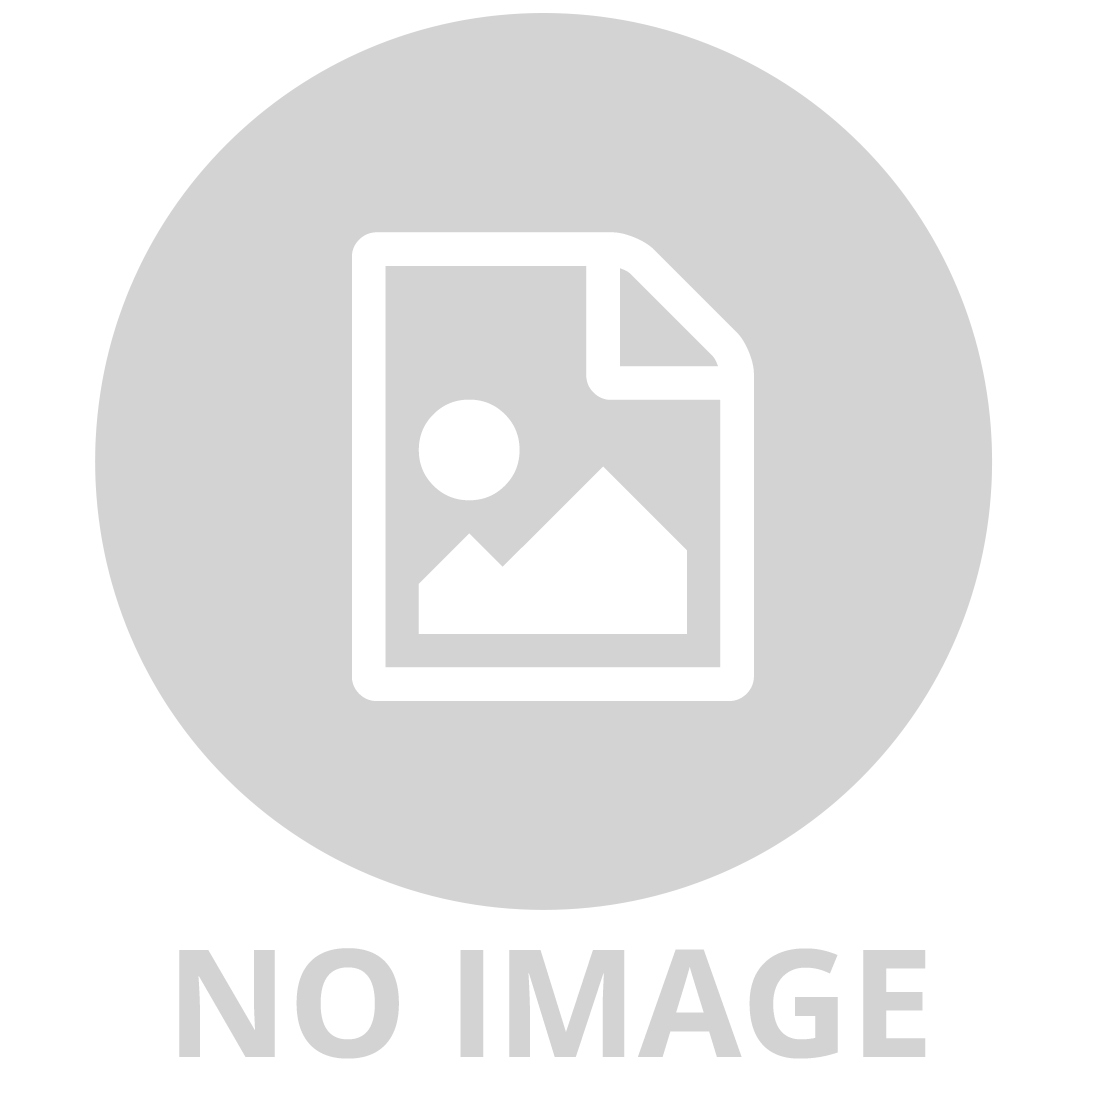 RAVENSBURGER 500 PIECE LARGE FORMAT PUZZLE - WEEKEND ESCAPE